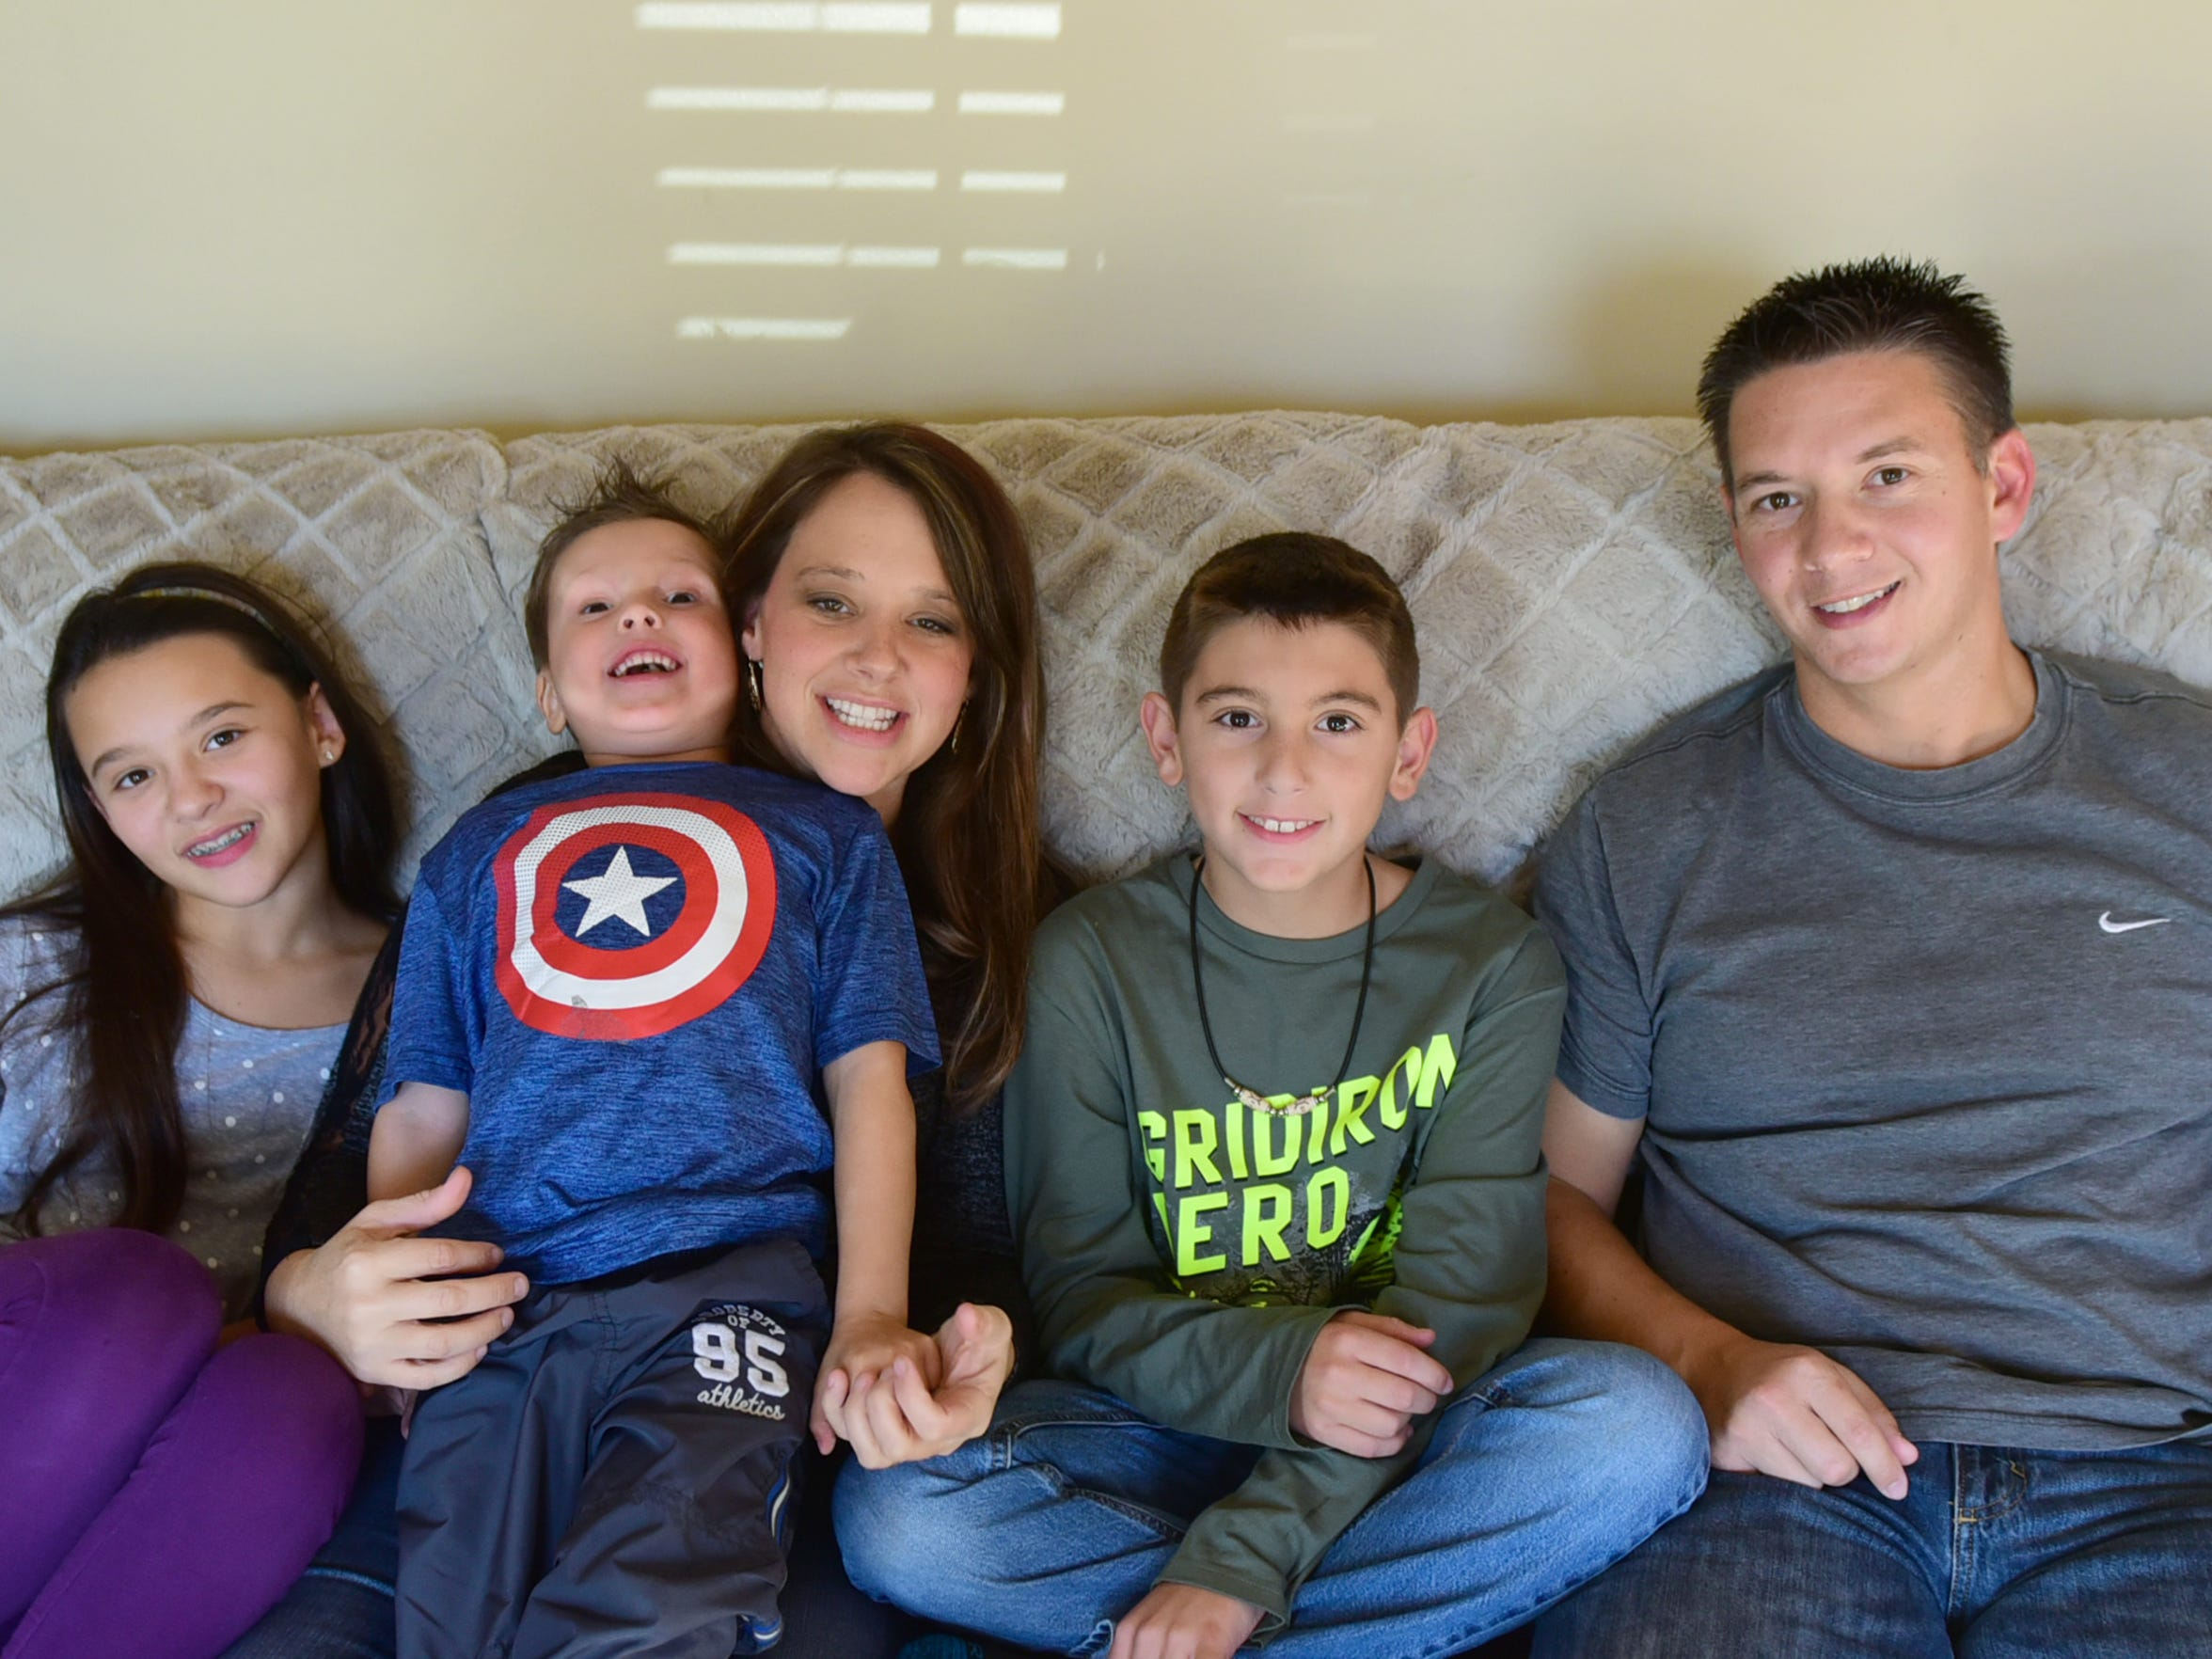 Foster parents Micah and Michelle Bumbaugh have three of their own children, Ava, their biological daughter, and former foster children whom they adopted, Jameson and Christian. Micah and Michelle have been foster parents for 11 years in Chambersburg.